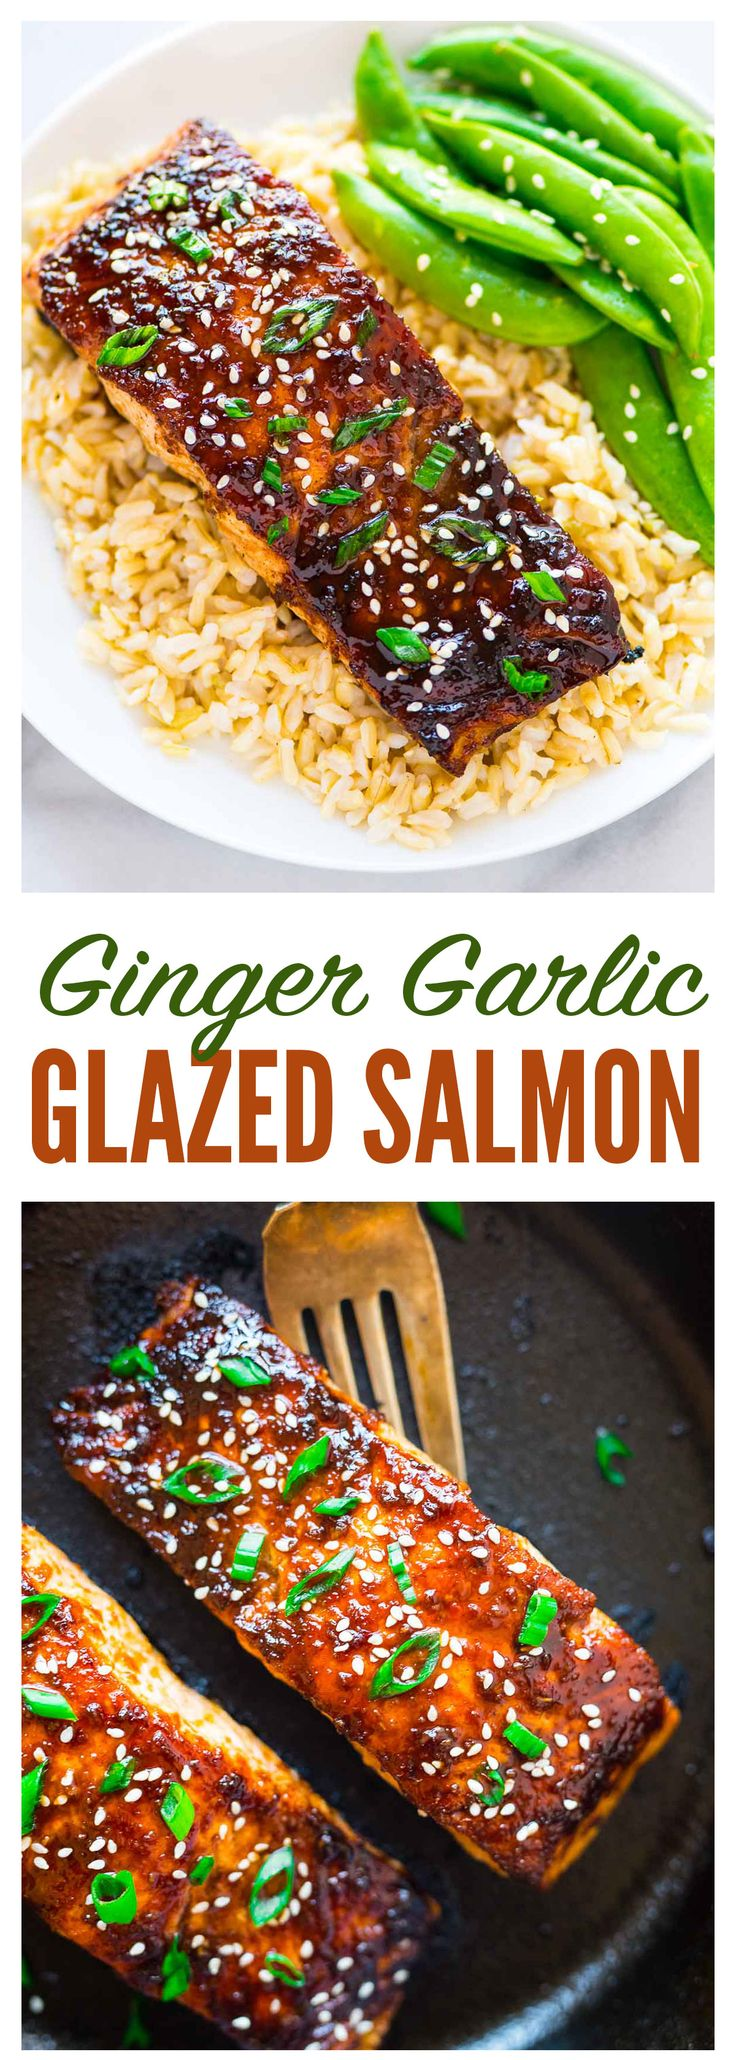 Baked Soy Ginger Salmon – the best, easiest recipe for PERFECT cooked salmon! Moist and flavorful, with a delicious honey soy ginger glaze. Fast enough for busy weeknight dinners, but special enough for company. Recipe at wellplated.com | @wellplated